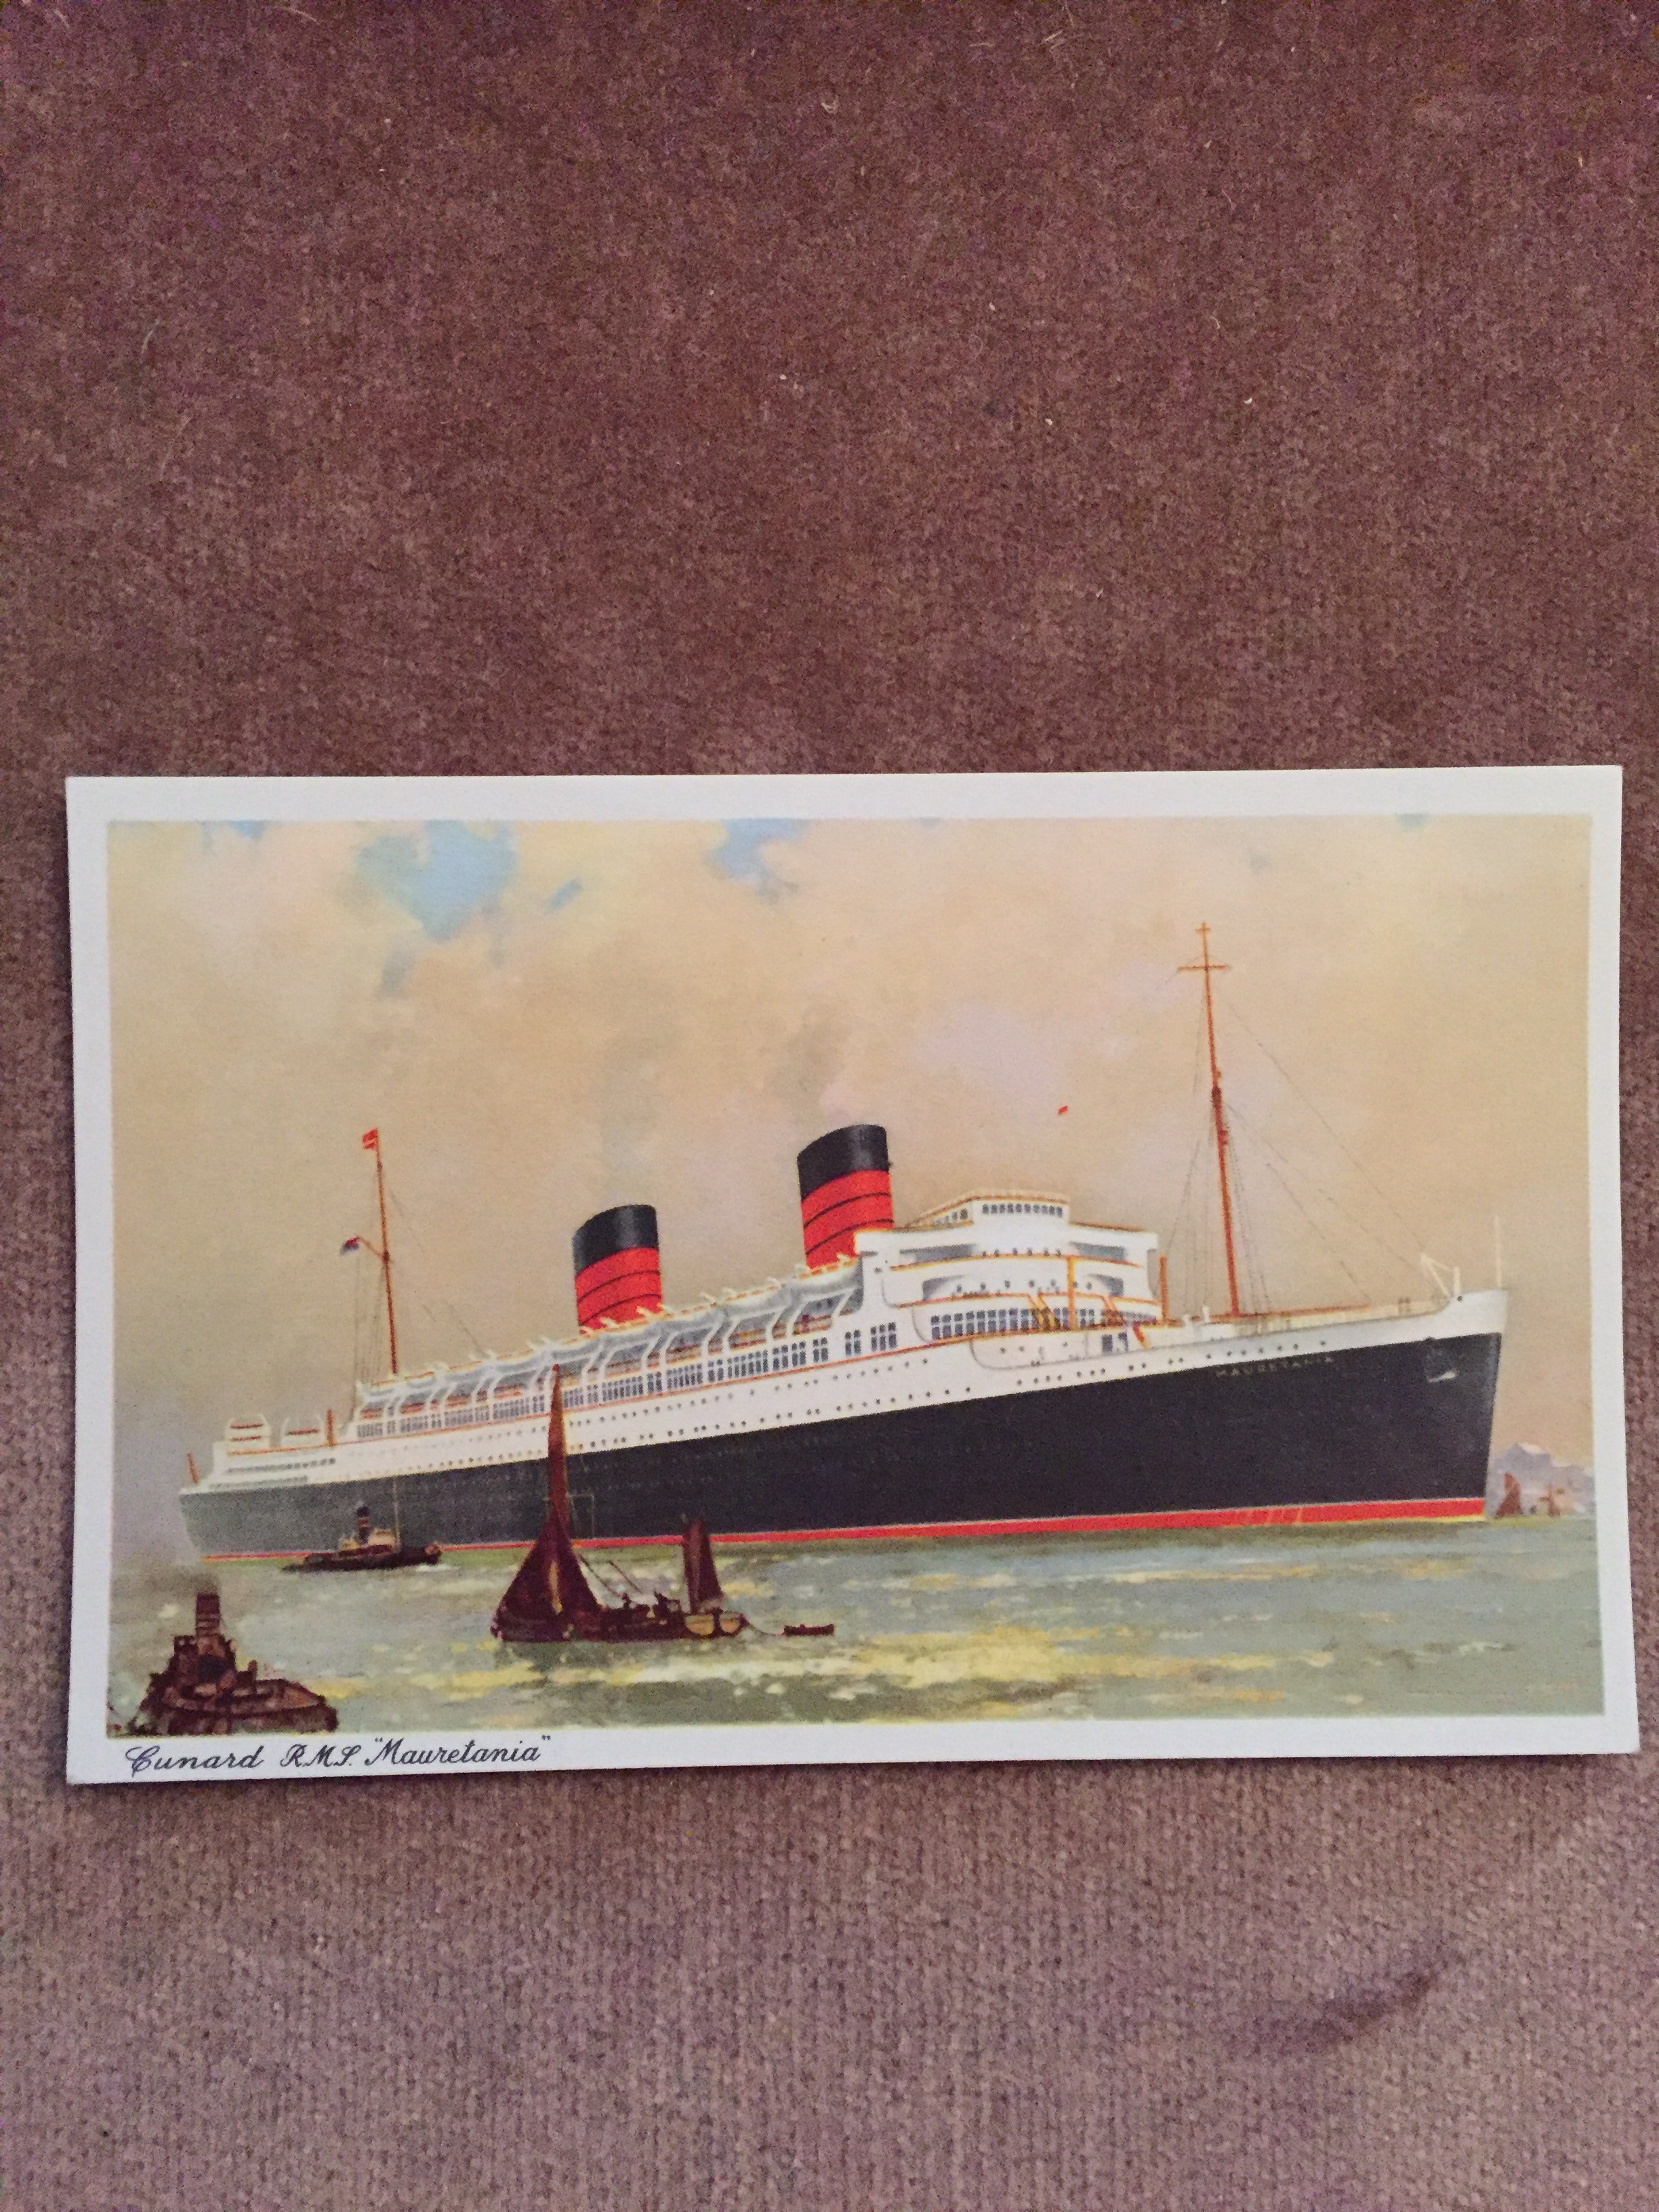 UNUSED COLOUR POSTCARD FROM THE OLD CUNARD WHITE STAR LINE VESSEL THE MAURETANIA